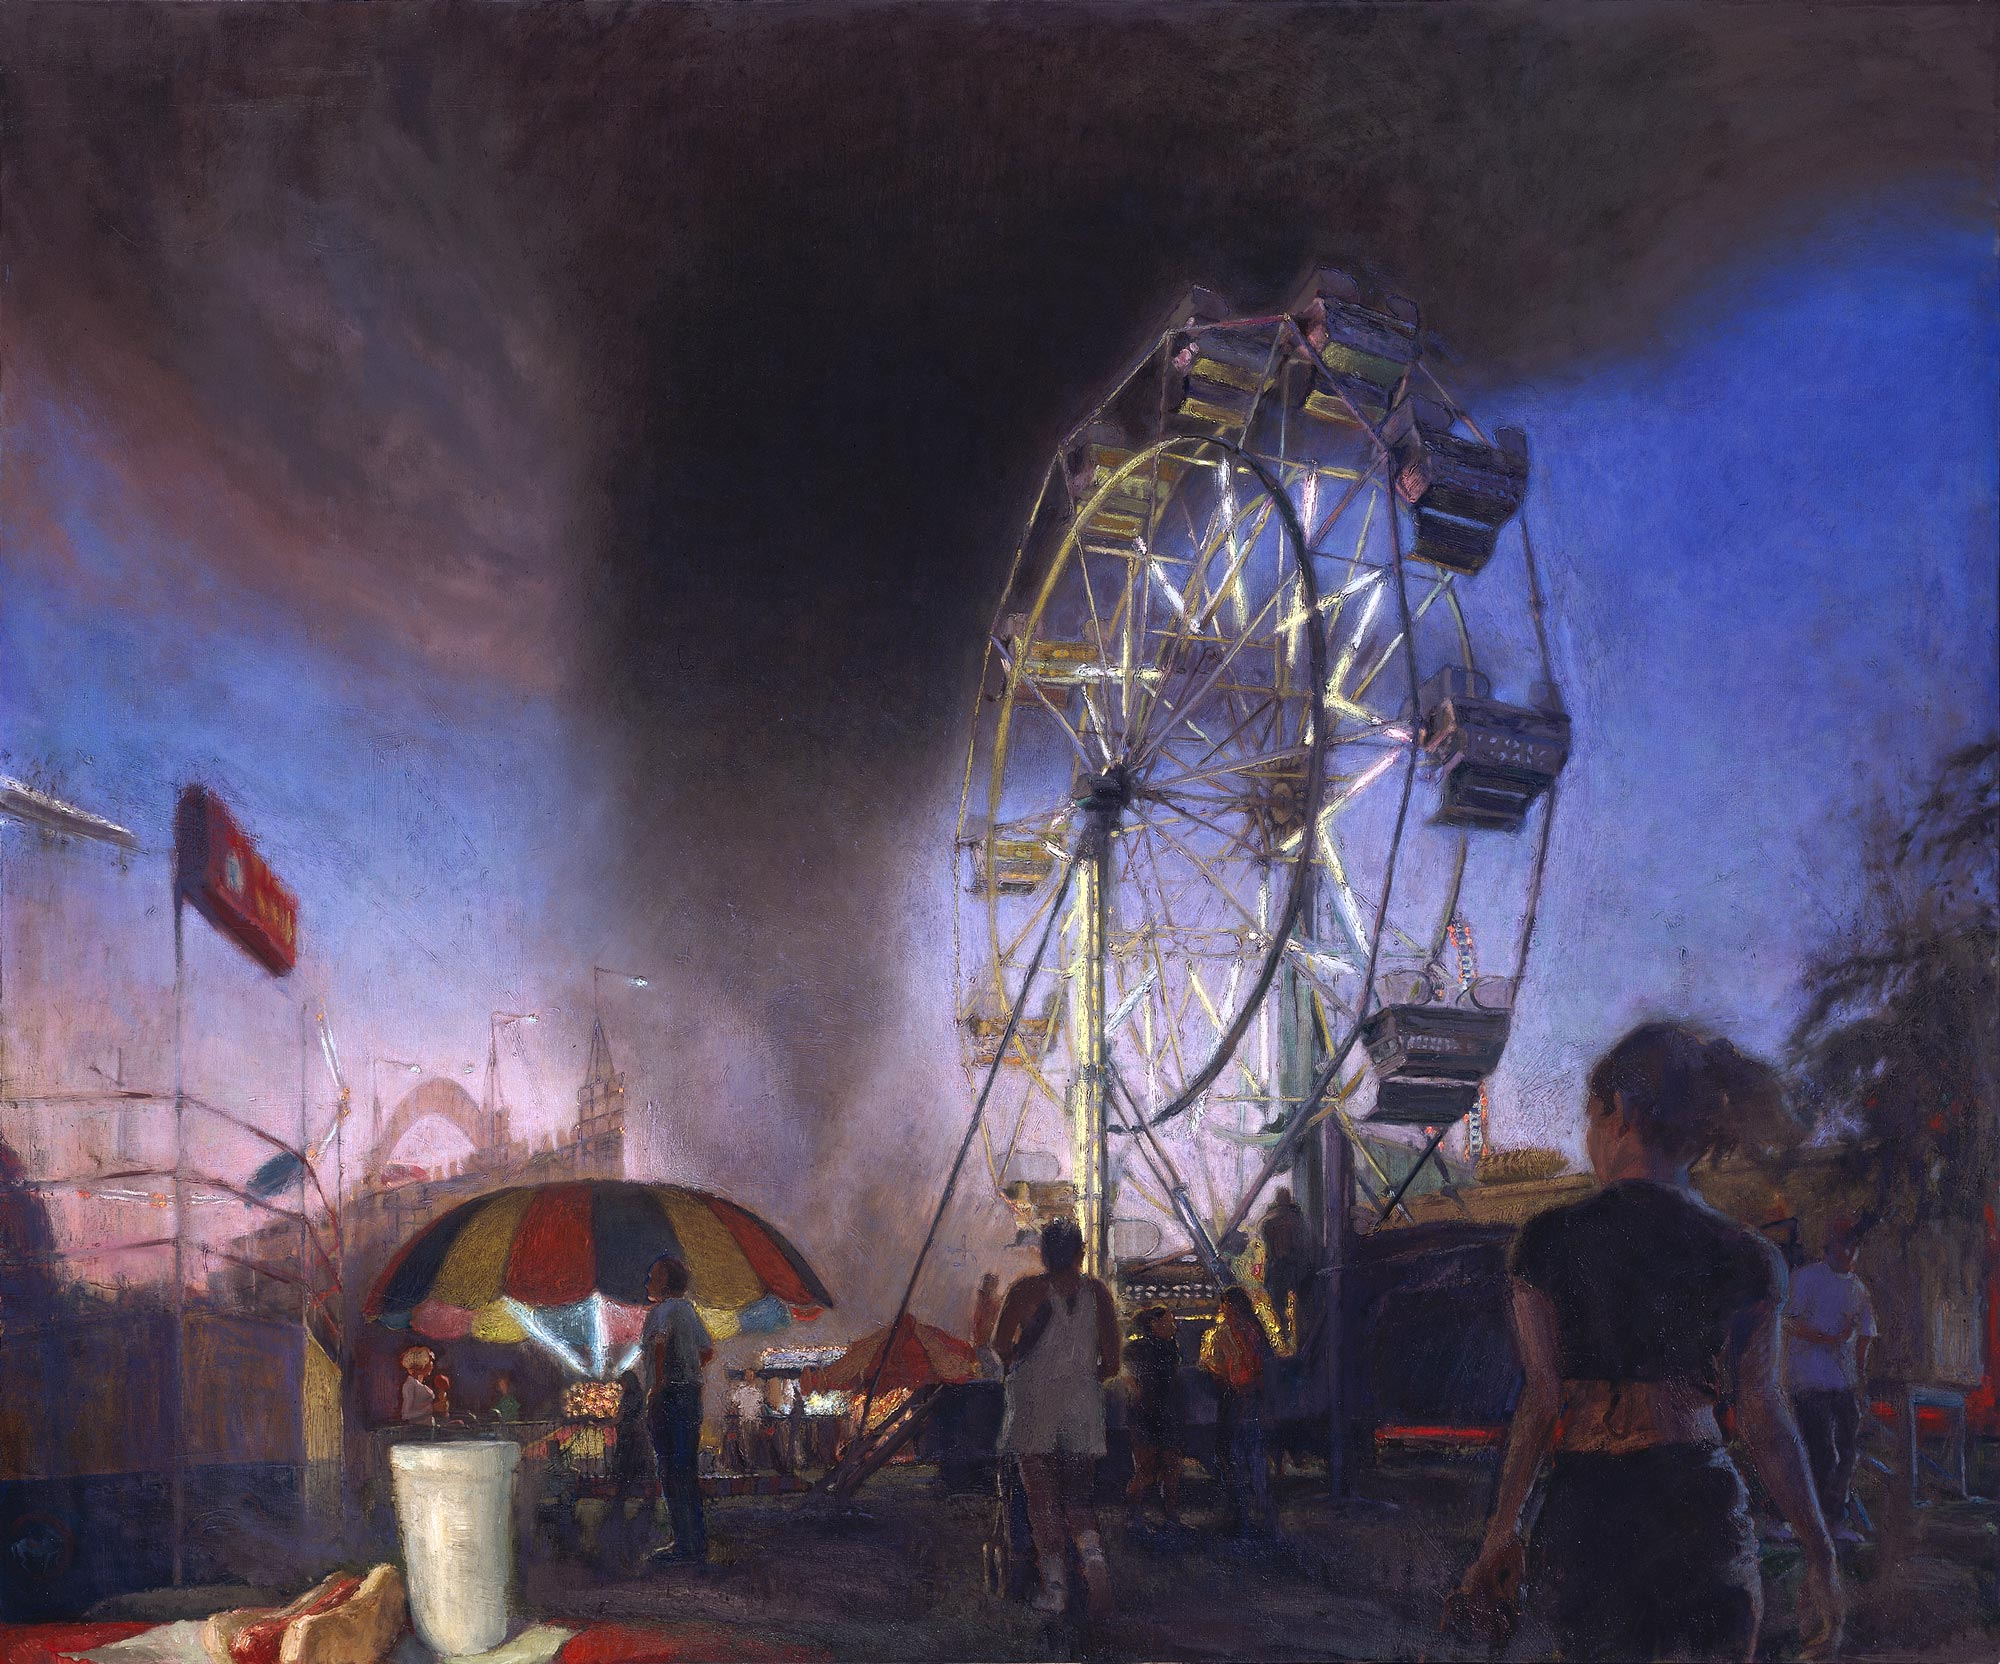 Rides 2, 60 x 72, oil on canvas, 2000